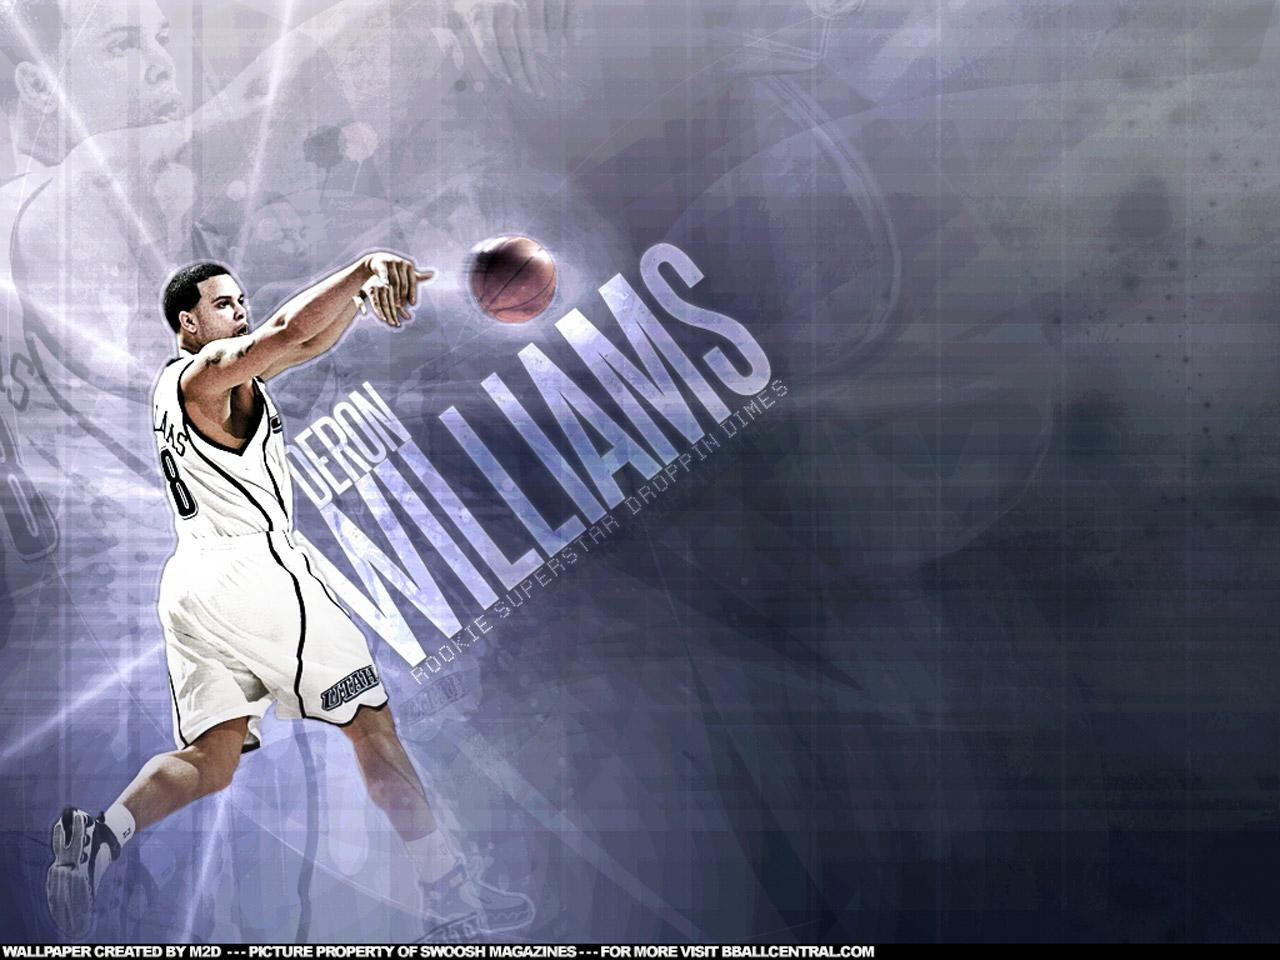 Williams3